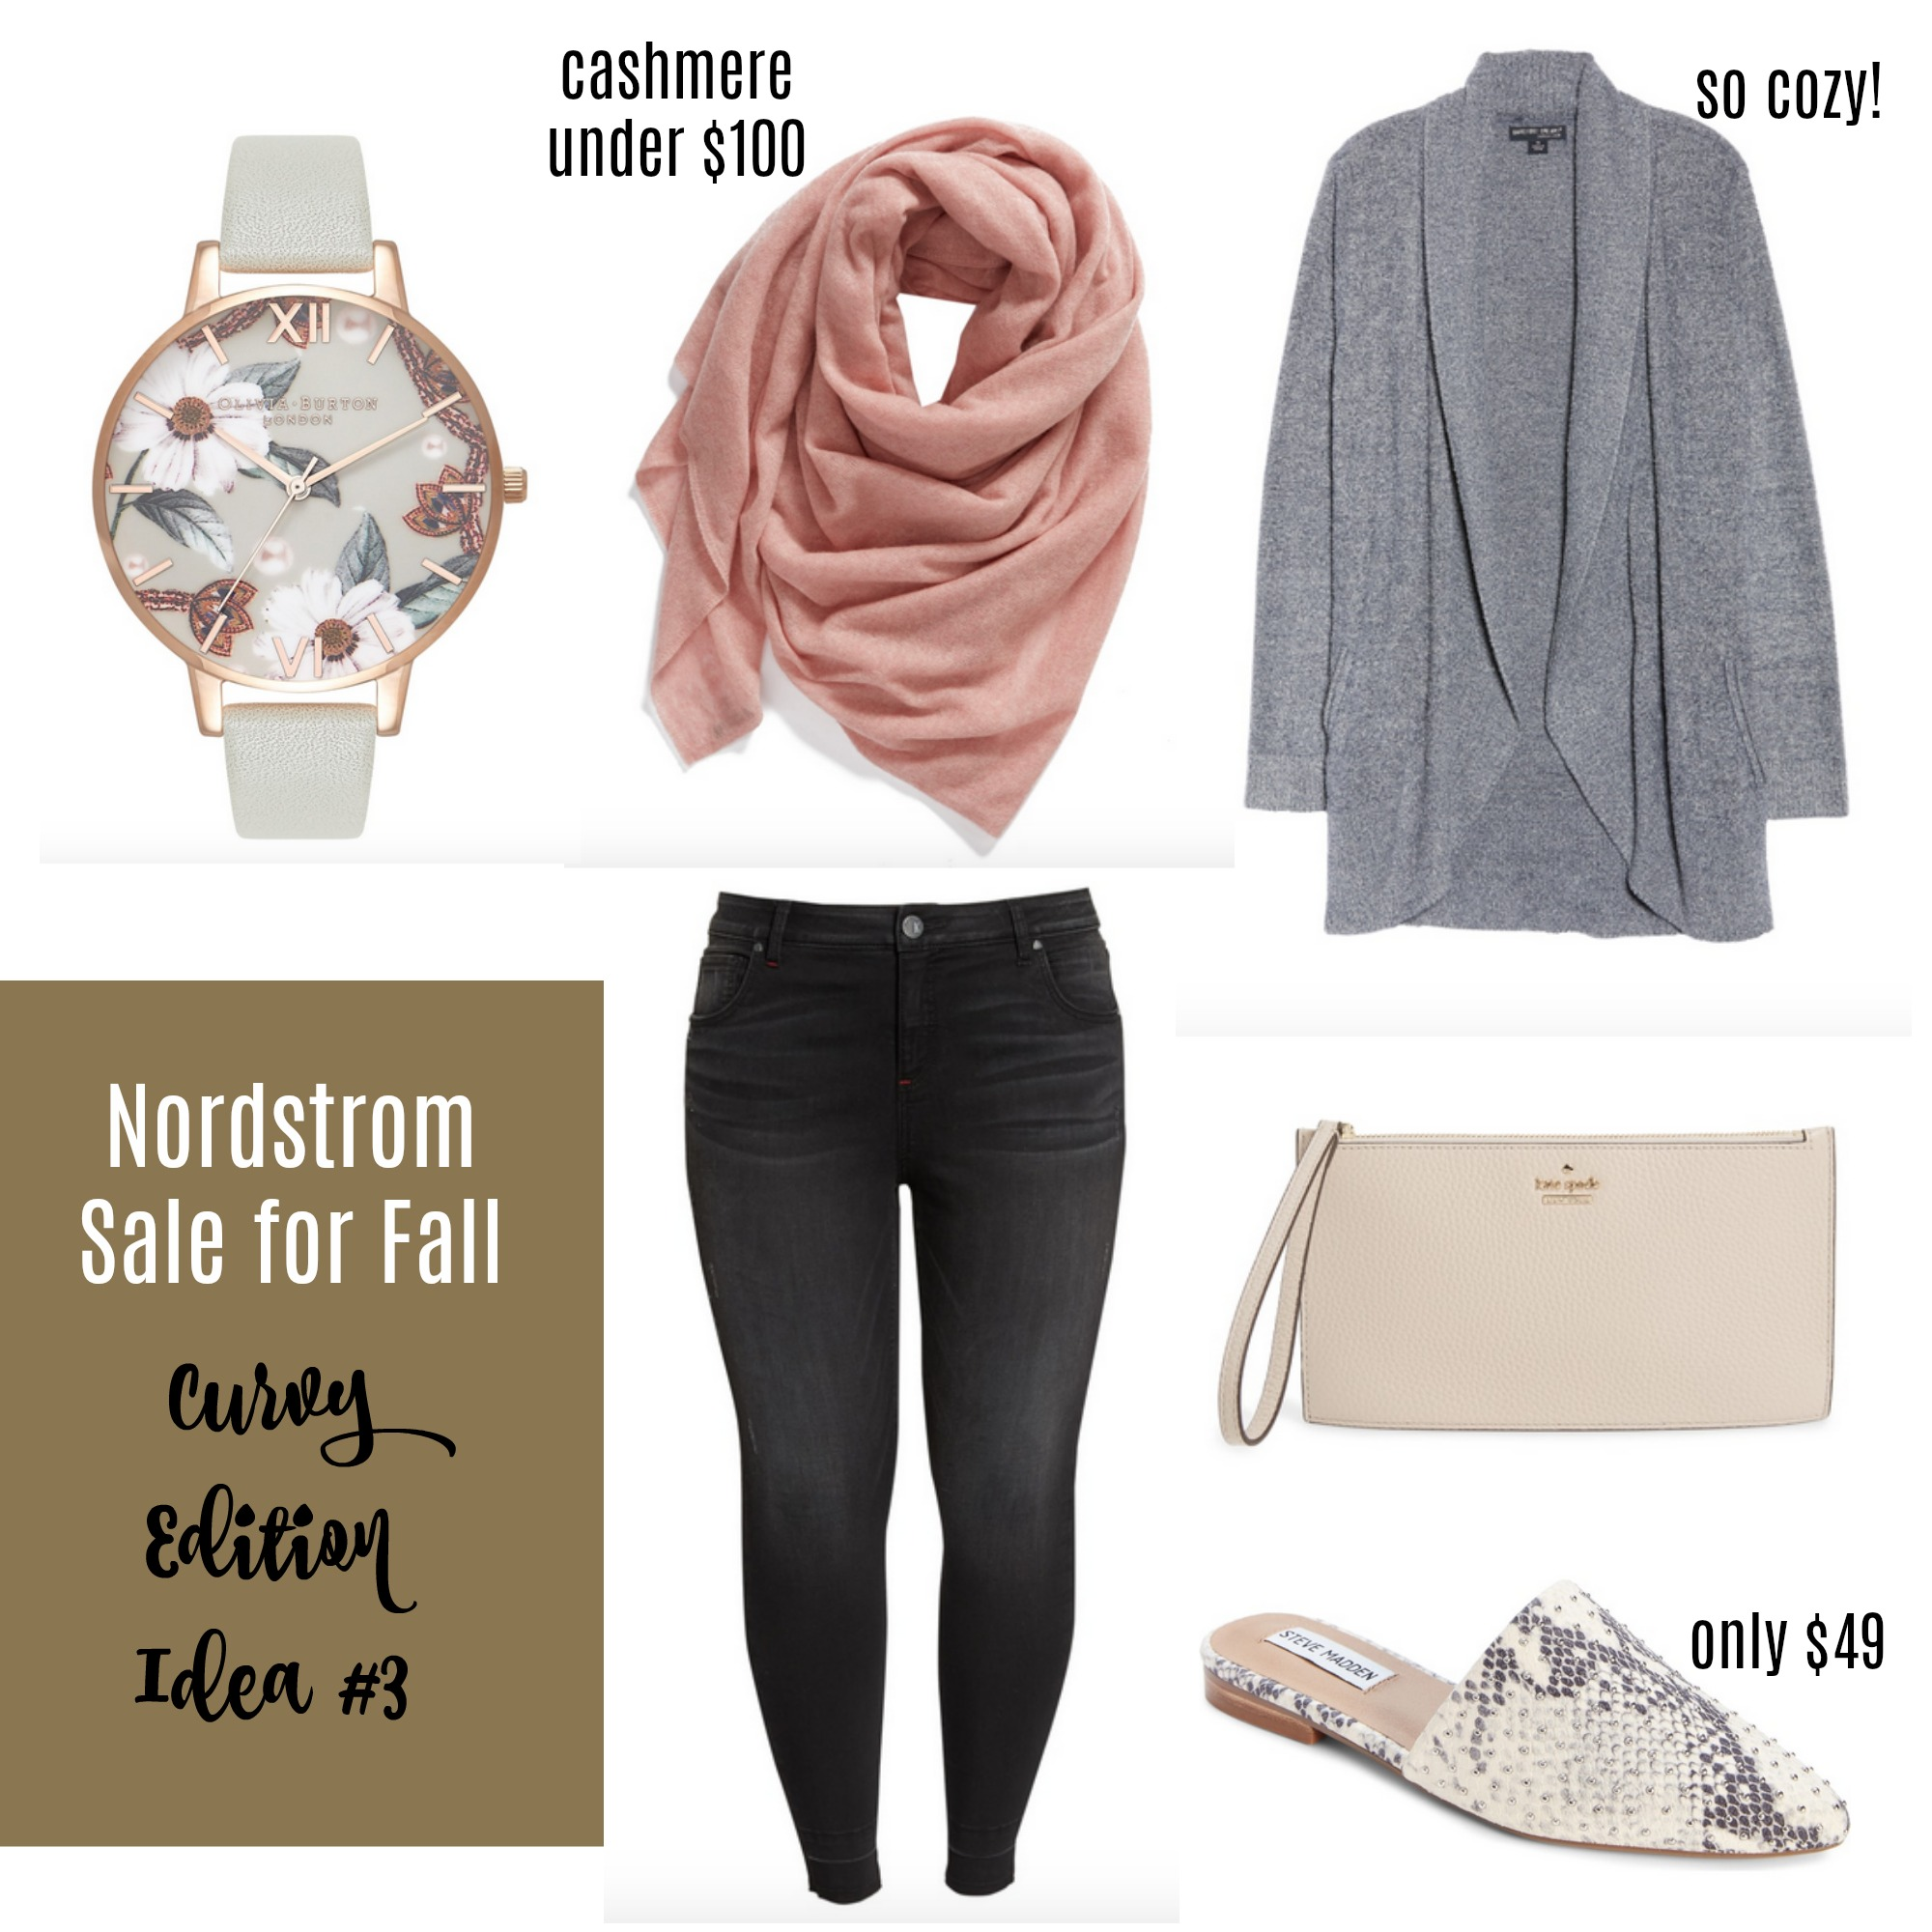 xlike to know it, nordstrom sale, plus size fashion, plus size style, curvy fashion, curvy style, nsale, scarf, fall, fall style, booties, fall booties